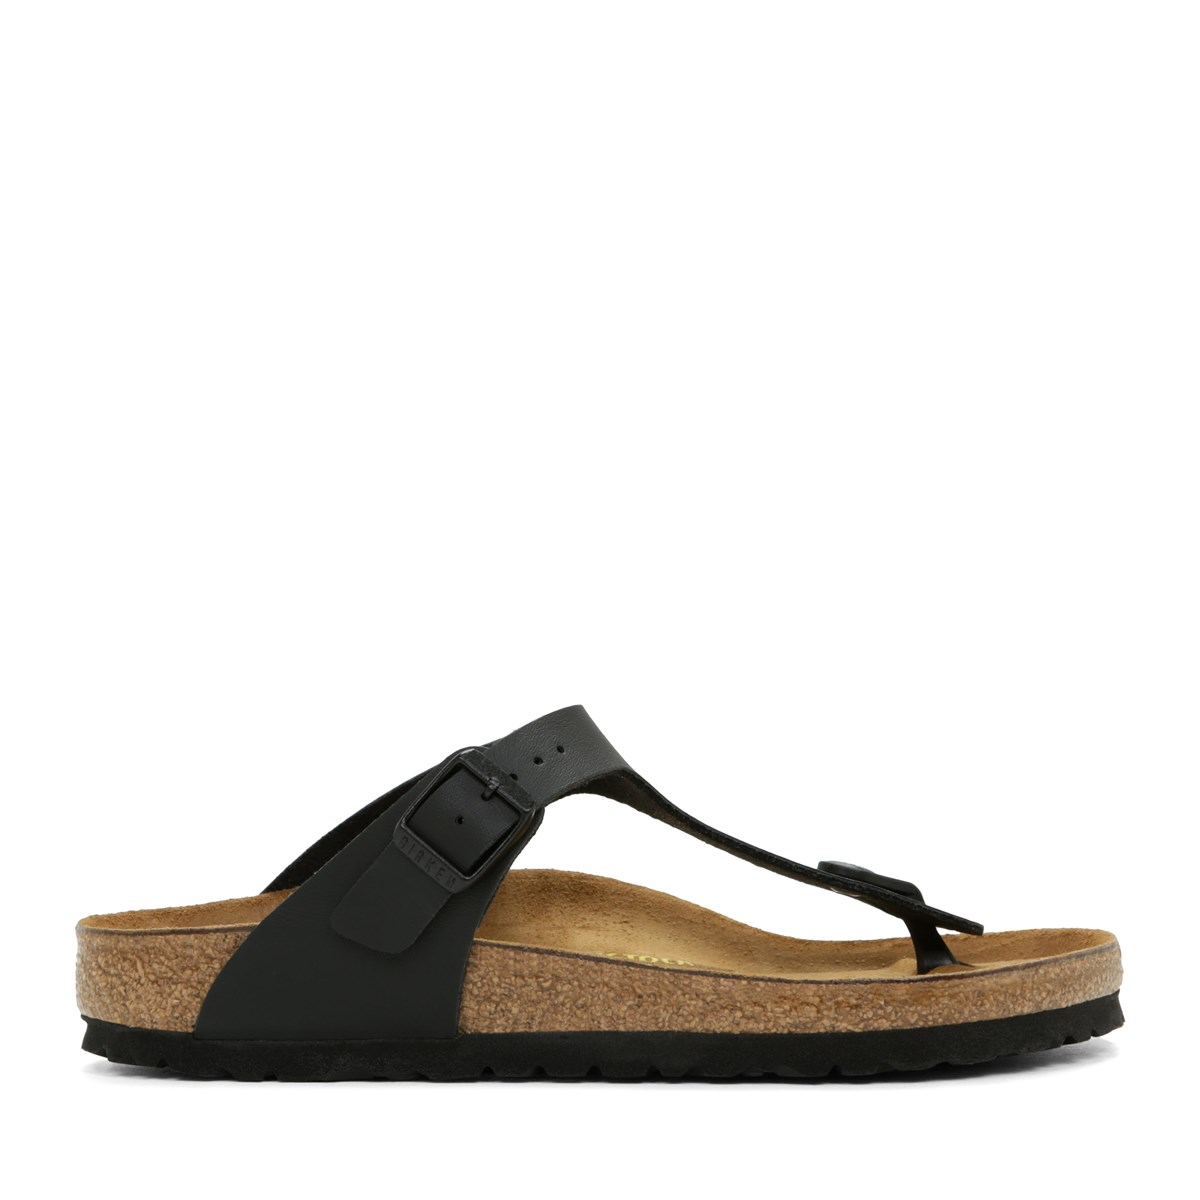 Women's Gizeh Thong Sandal in Black